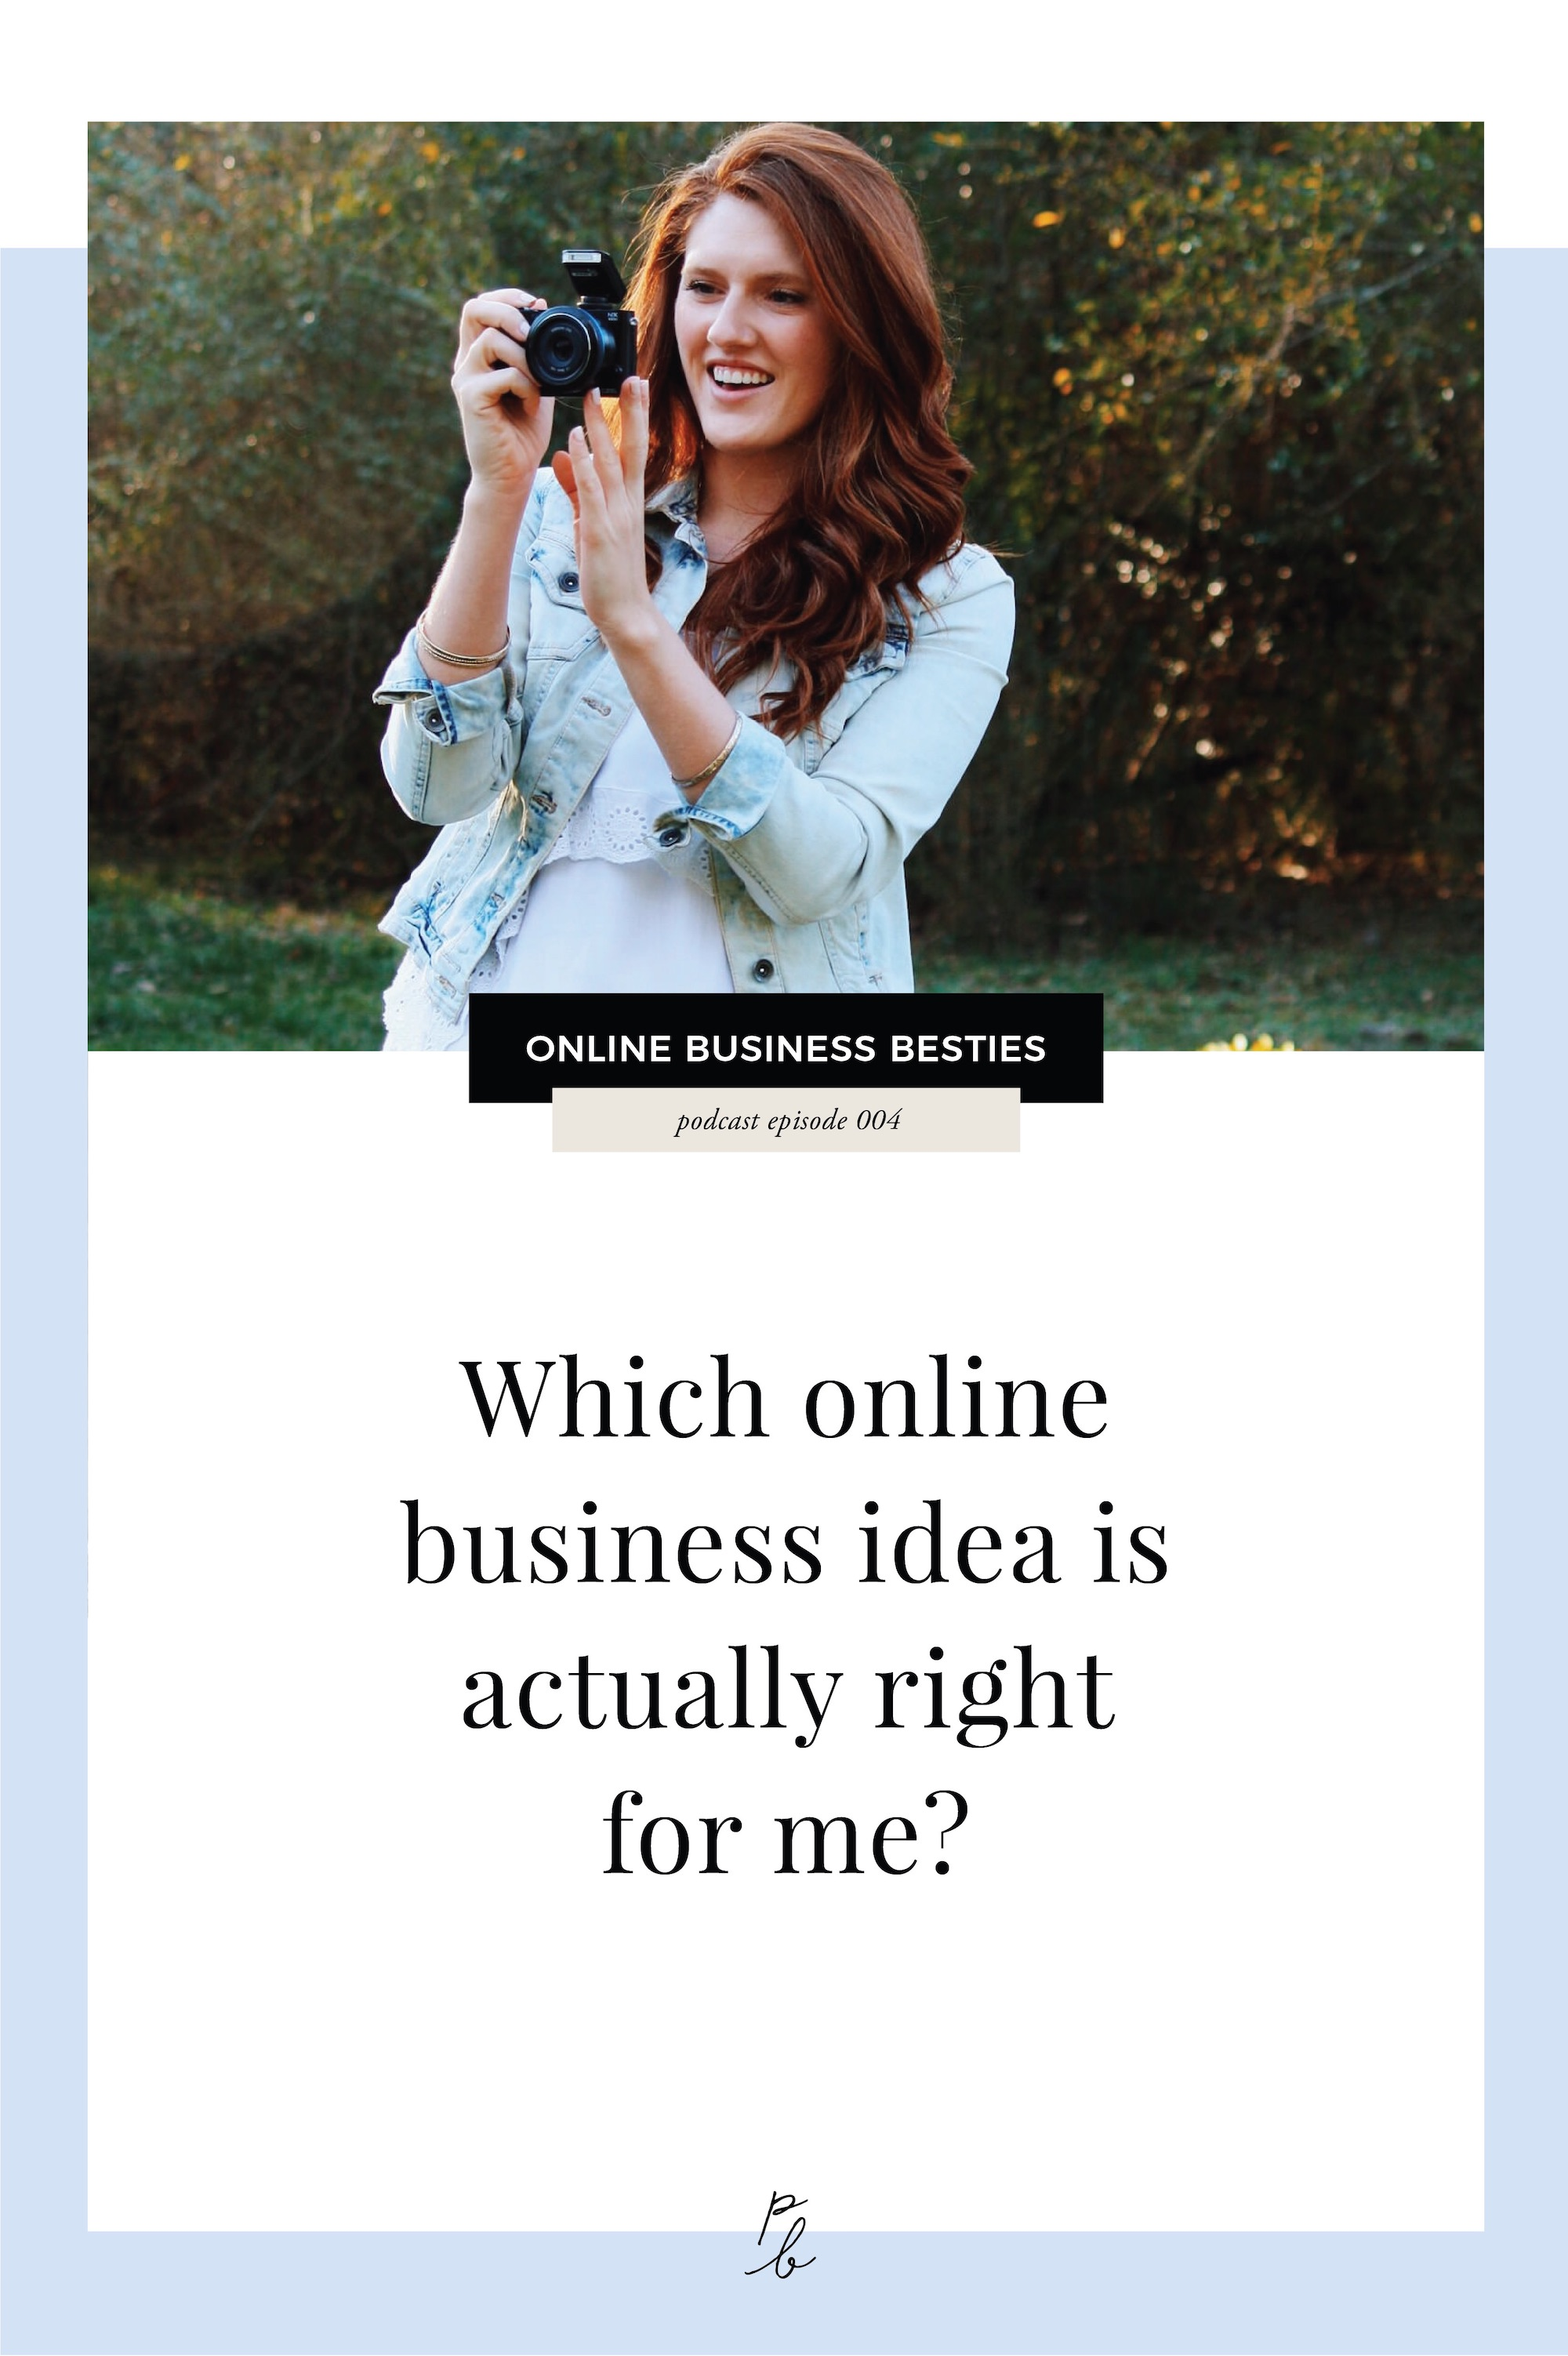 which online business idea is actually right for me?.jpg